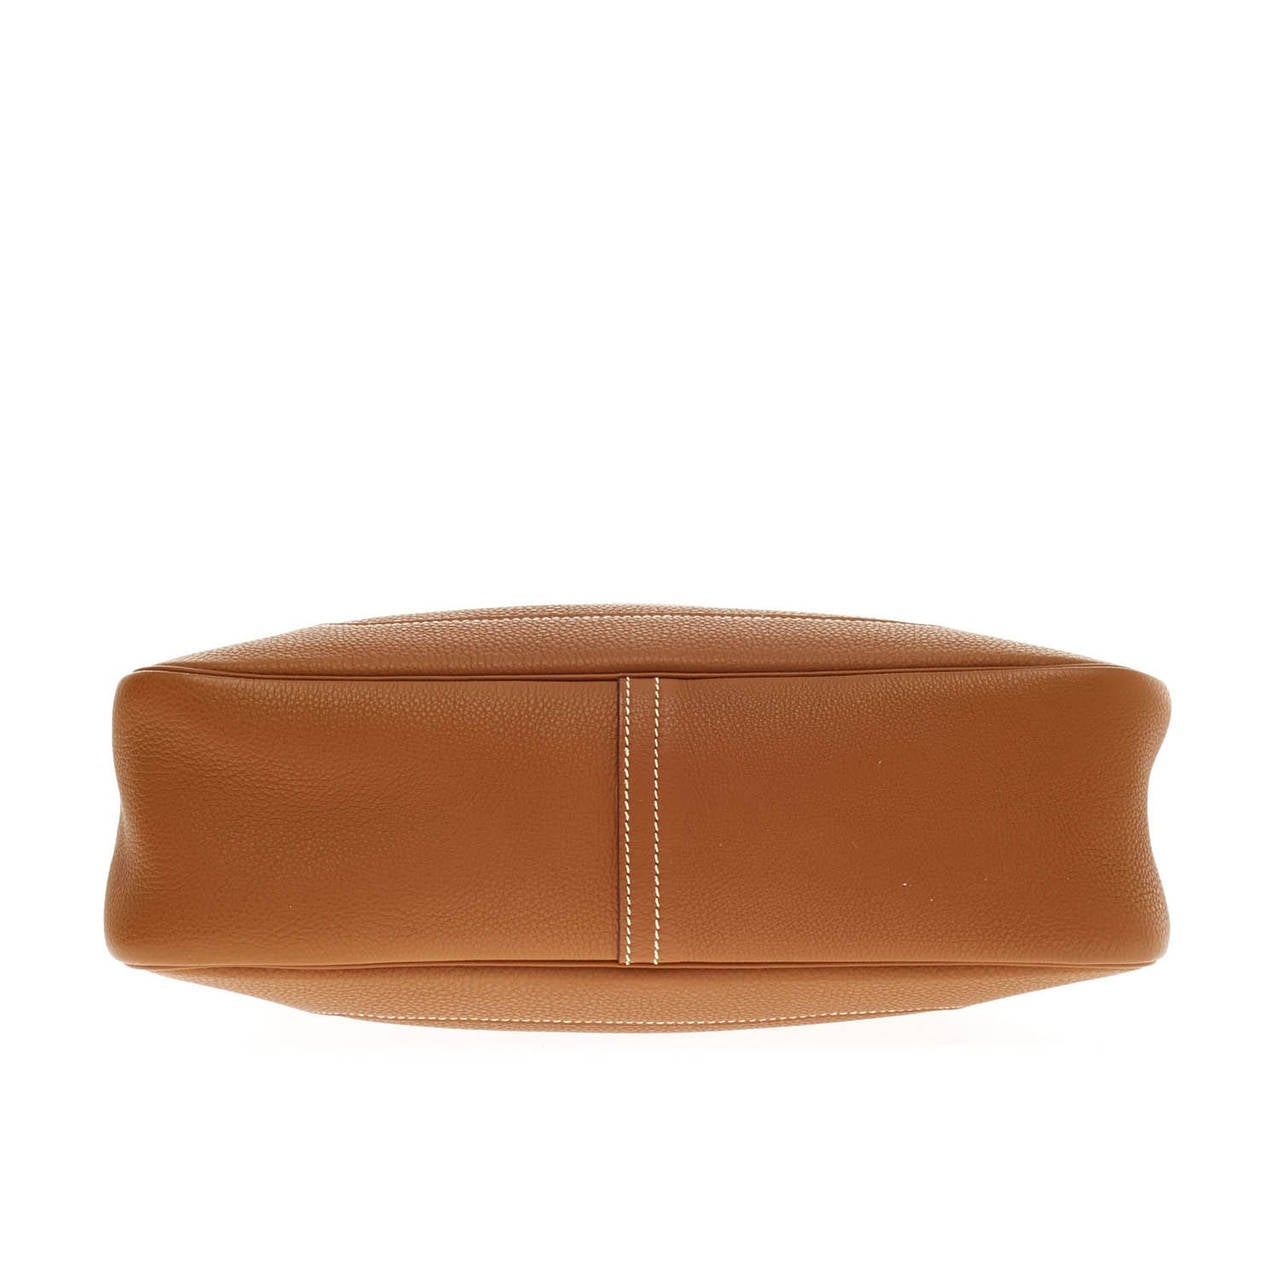 Hermes Trim Ii Clemence Leather 31 At 1stdibs